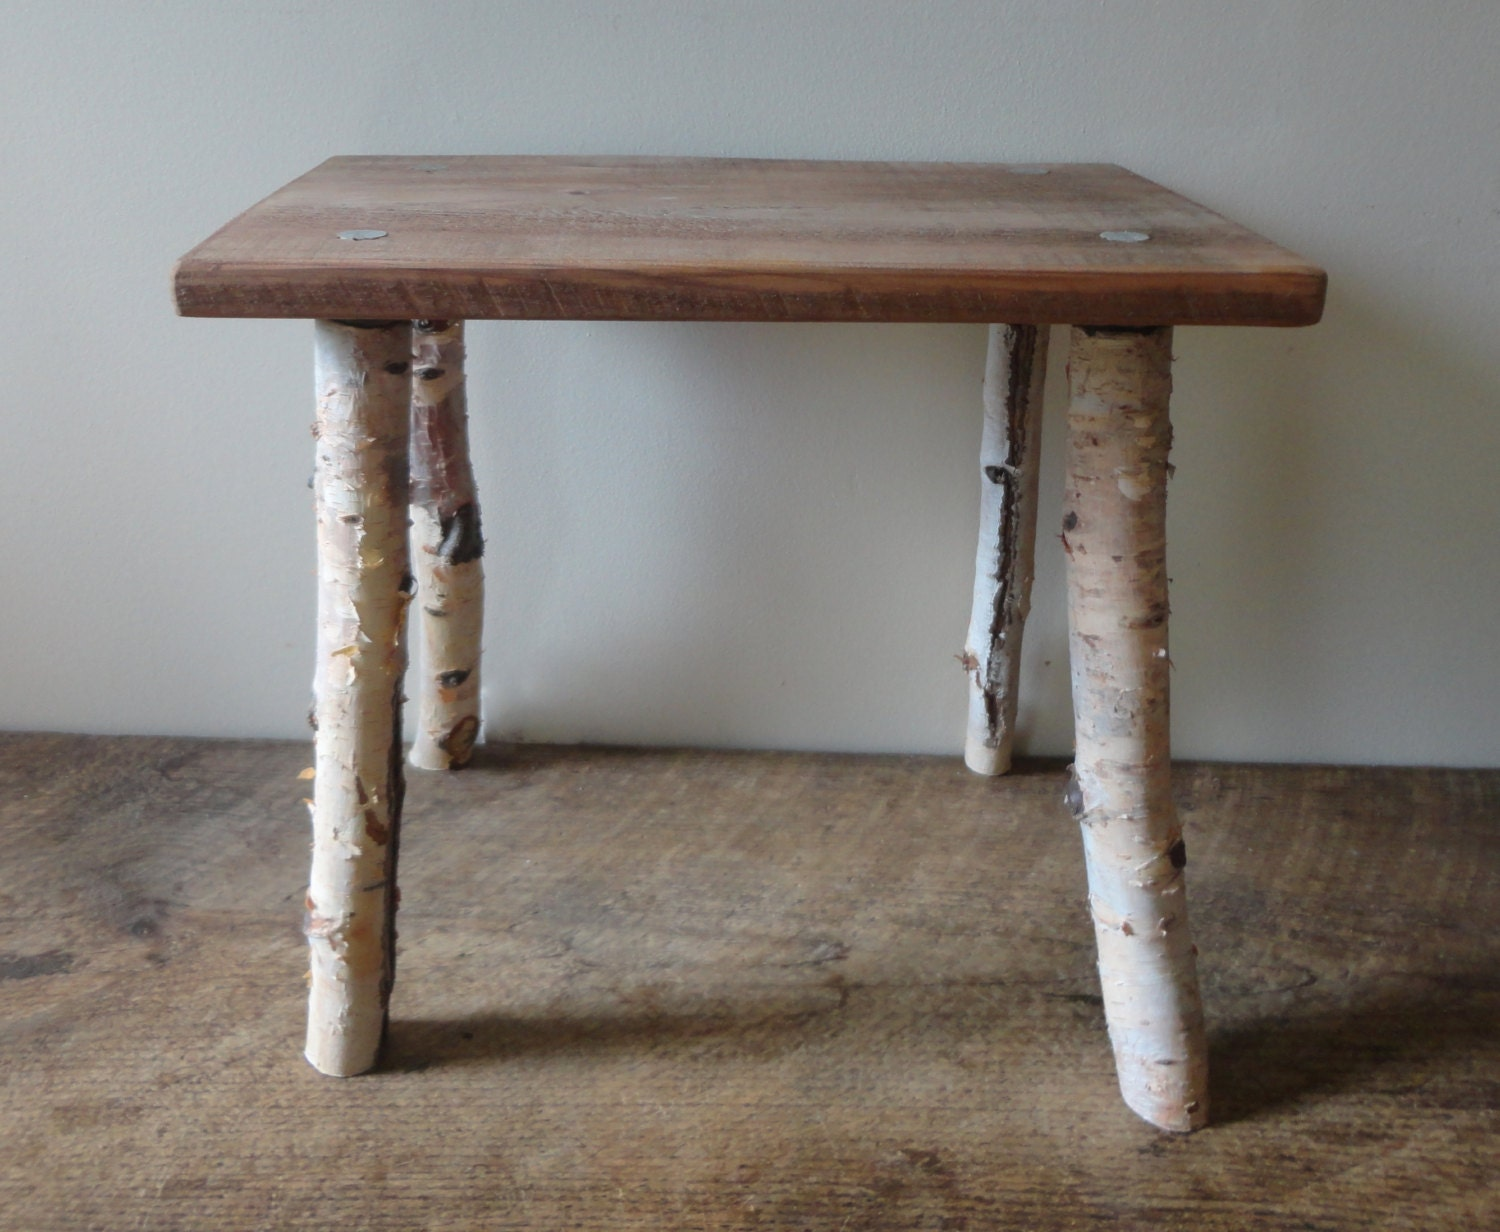 White birch wood primitive bench rustic stool stick